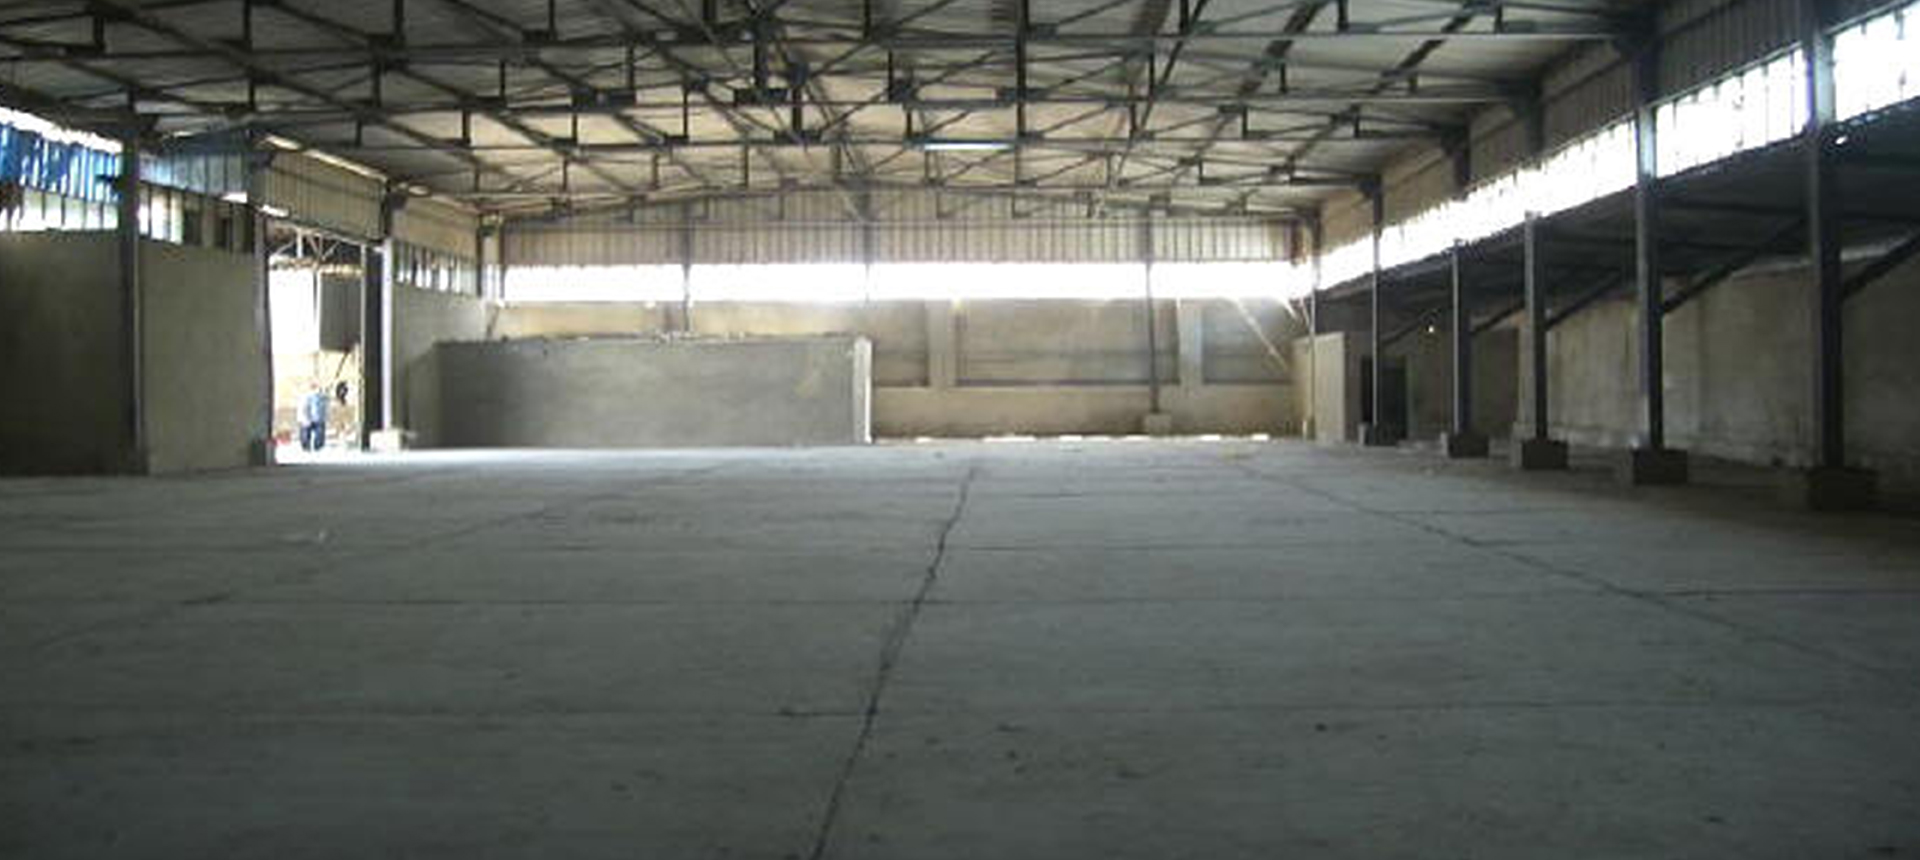 Renovation and Strengthen the Roof of the Transport Workshop